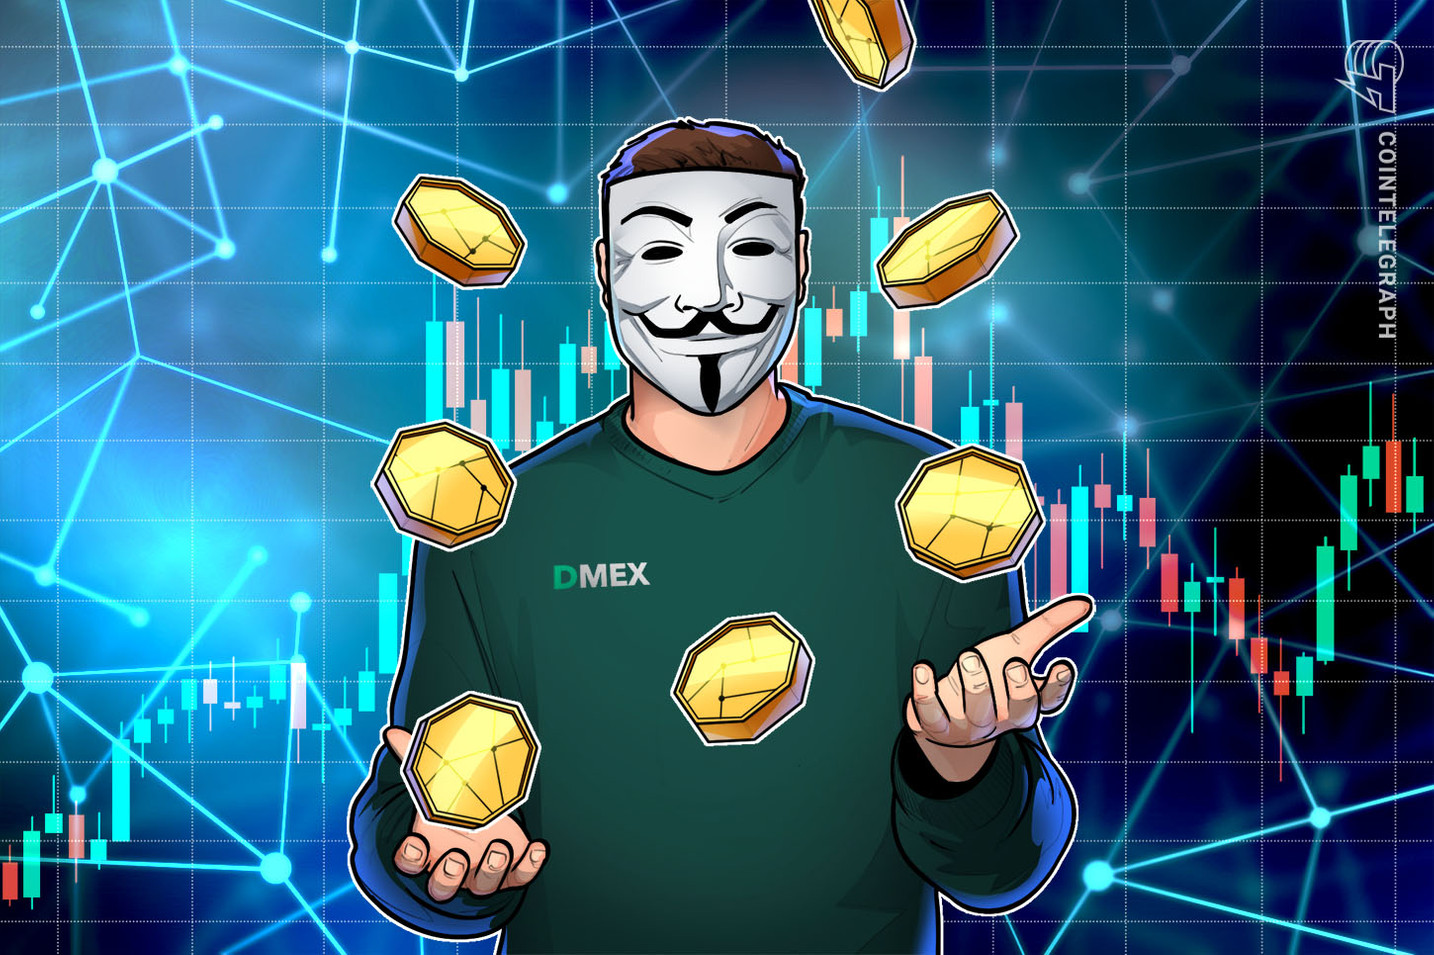 DEX offers margin trading, anonymity, fast withdrawals and no KYC